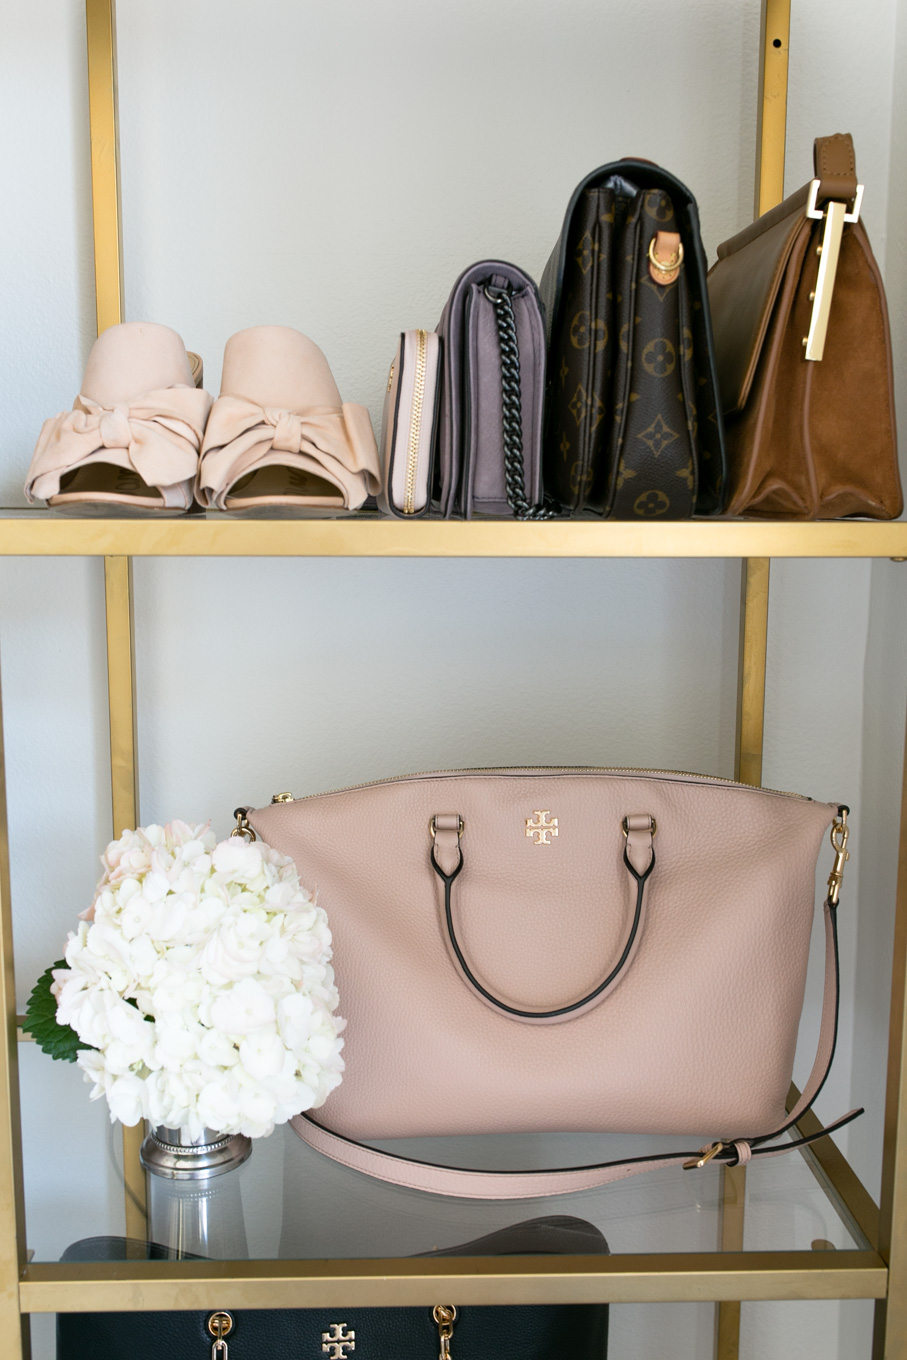 The Tory Burch Frida Leather Satchel is one of the best handbags of the Nordstrom Anniversary Sale 2017